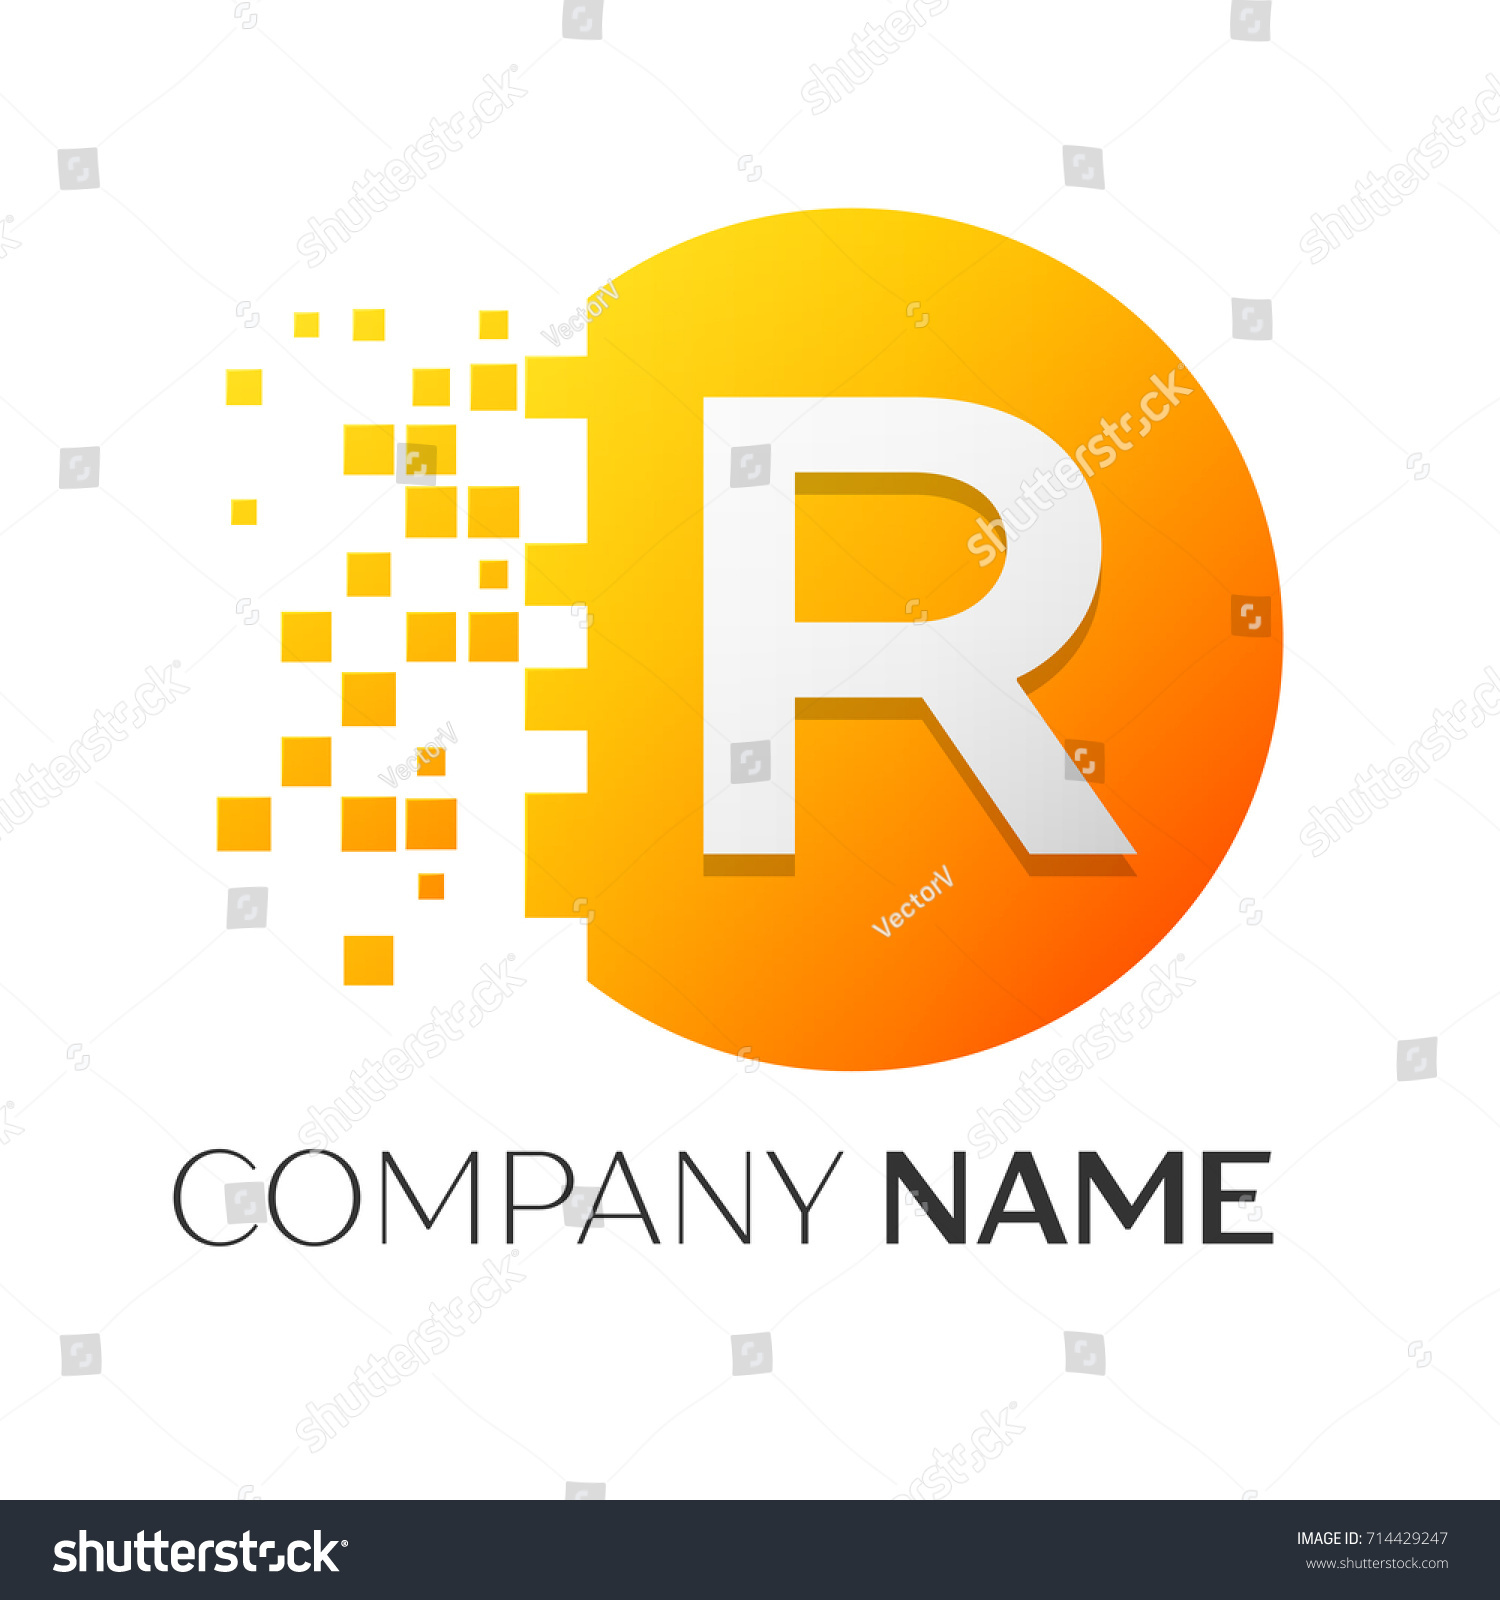 Realistic letter r logo symbol colorful stock illustration realistic letter r logo symbol in the colorful circle with shattered blocks on white background buycottarizona